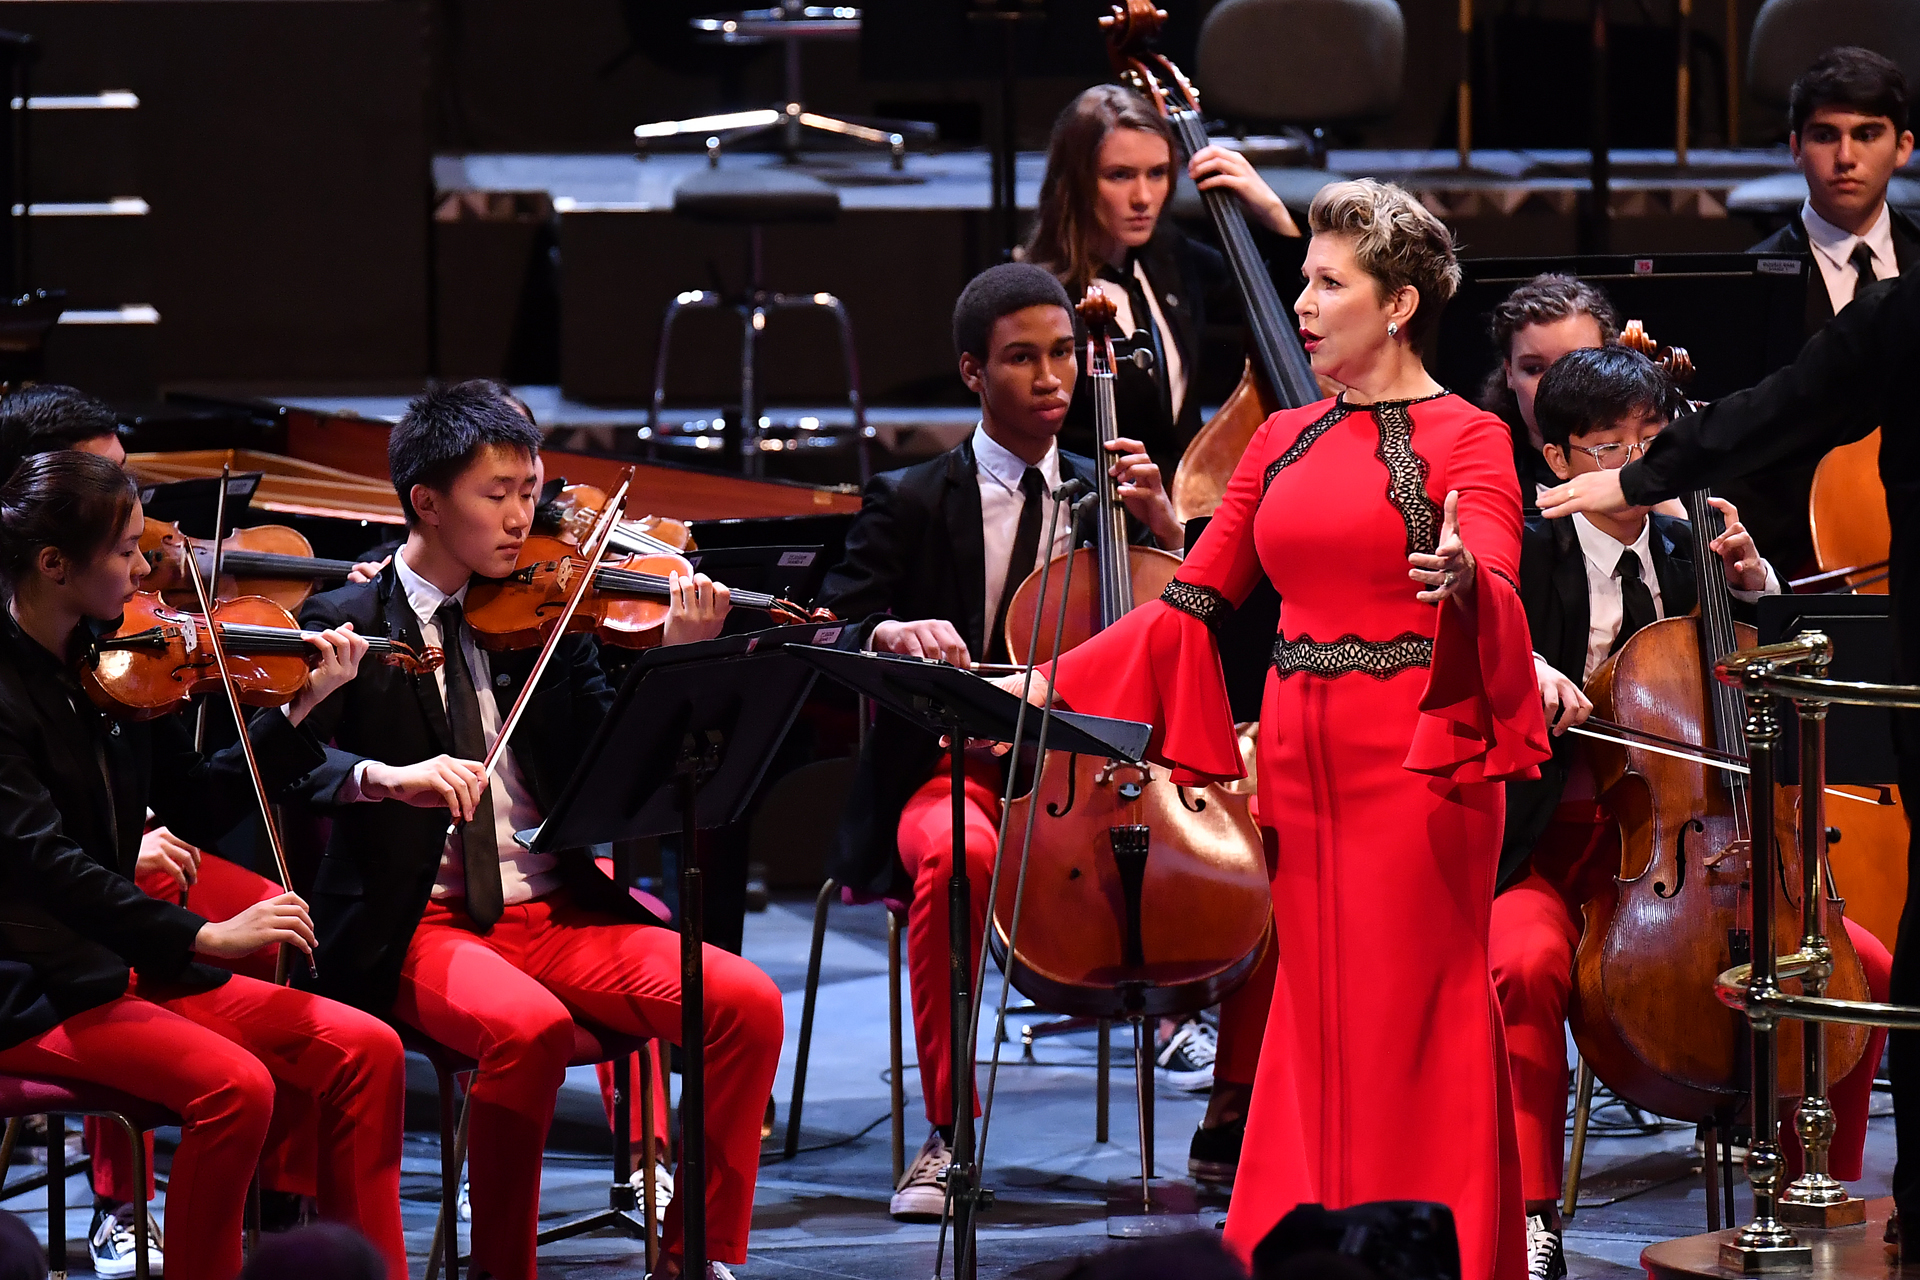 Joyce DiDonato and NYO-US players at the Proms